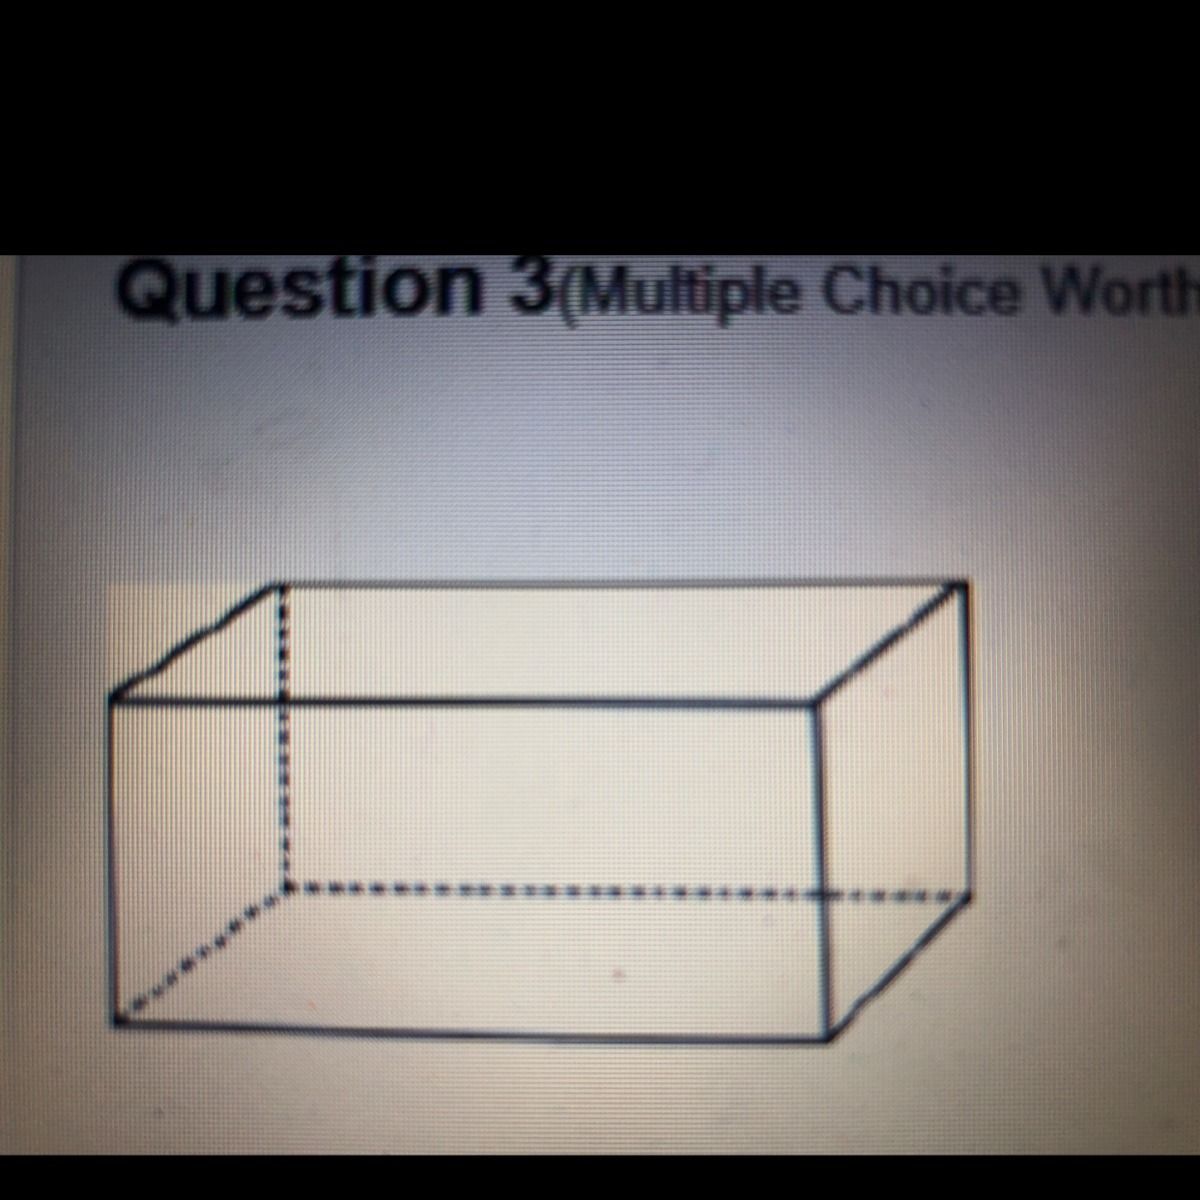 What Shape Best Describes The Cross Section Cut Parallel